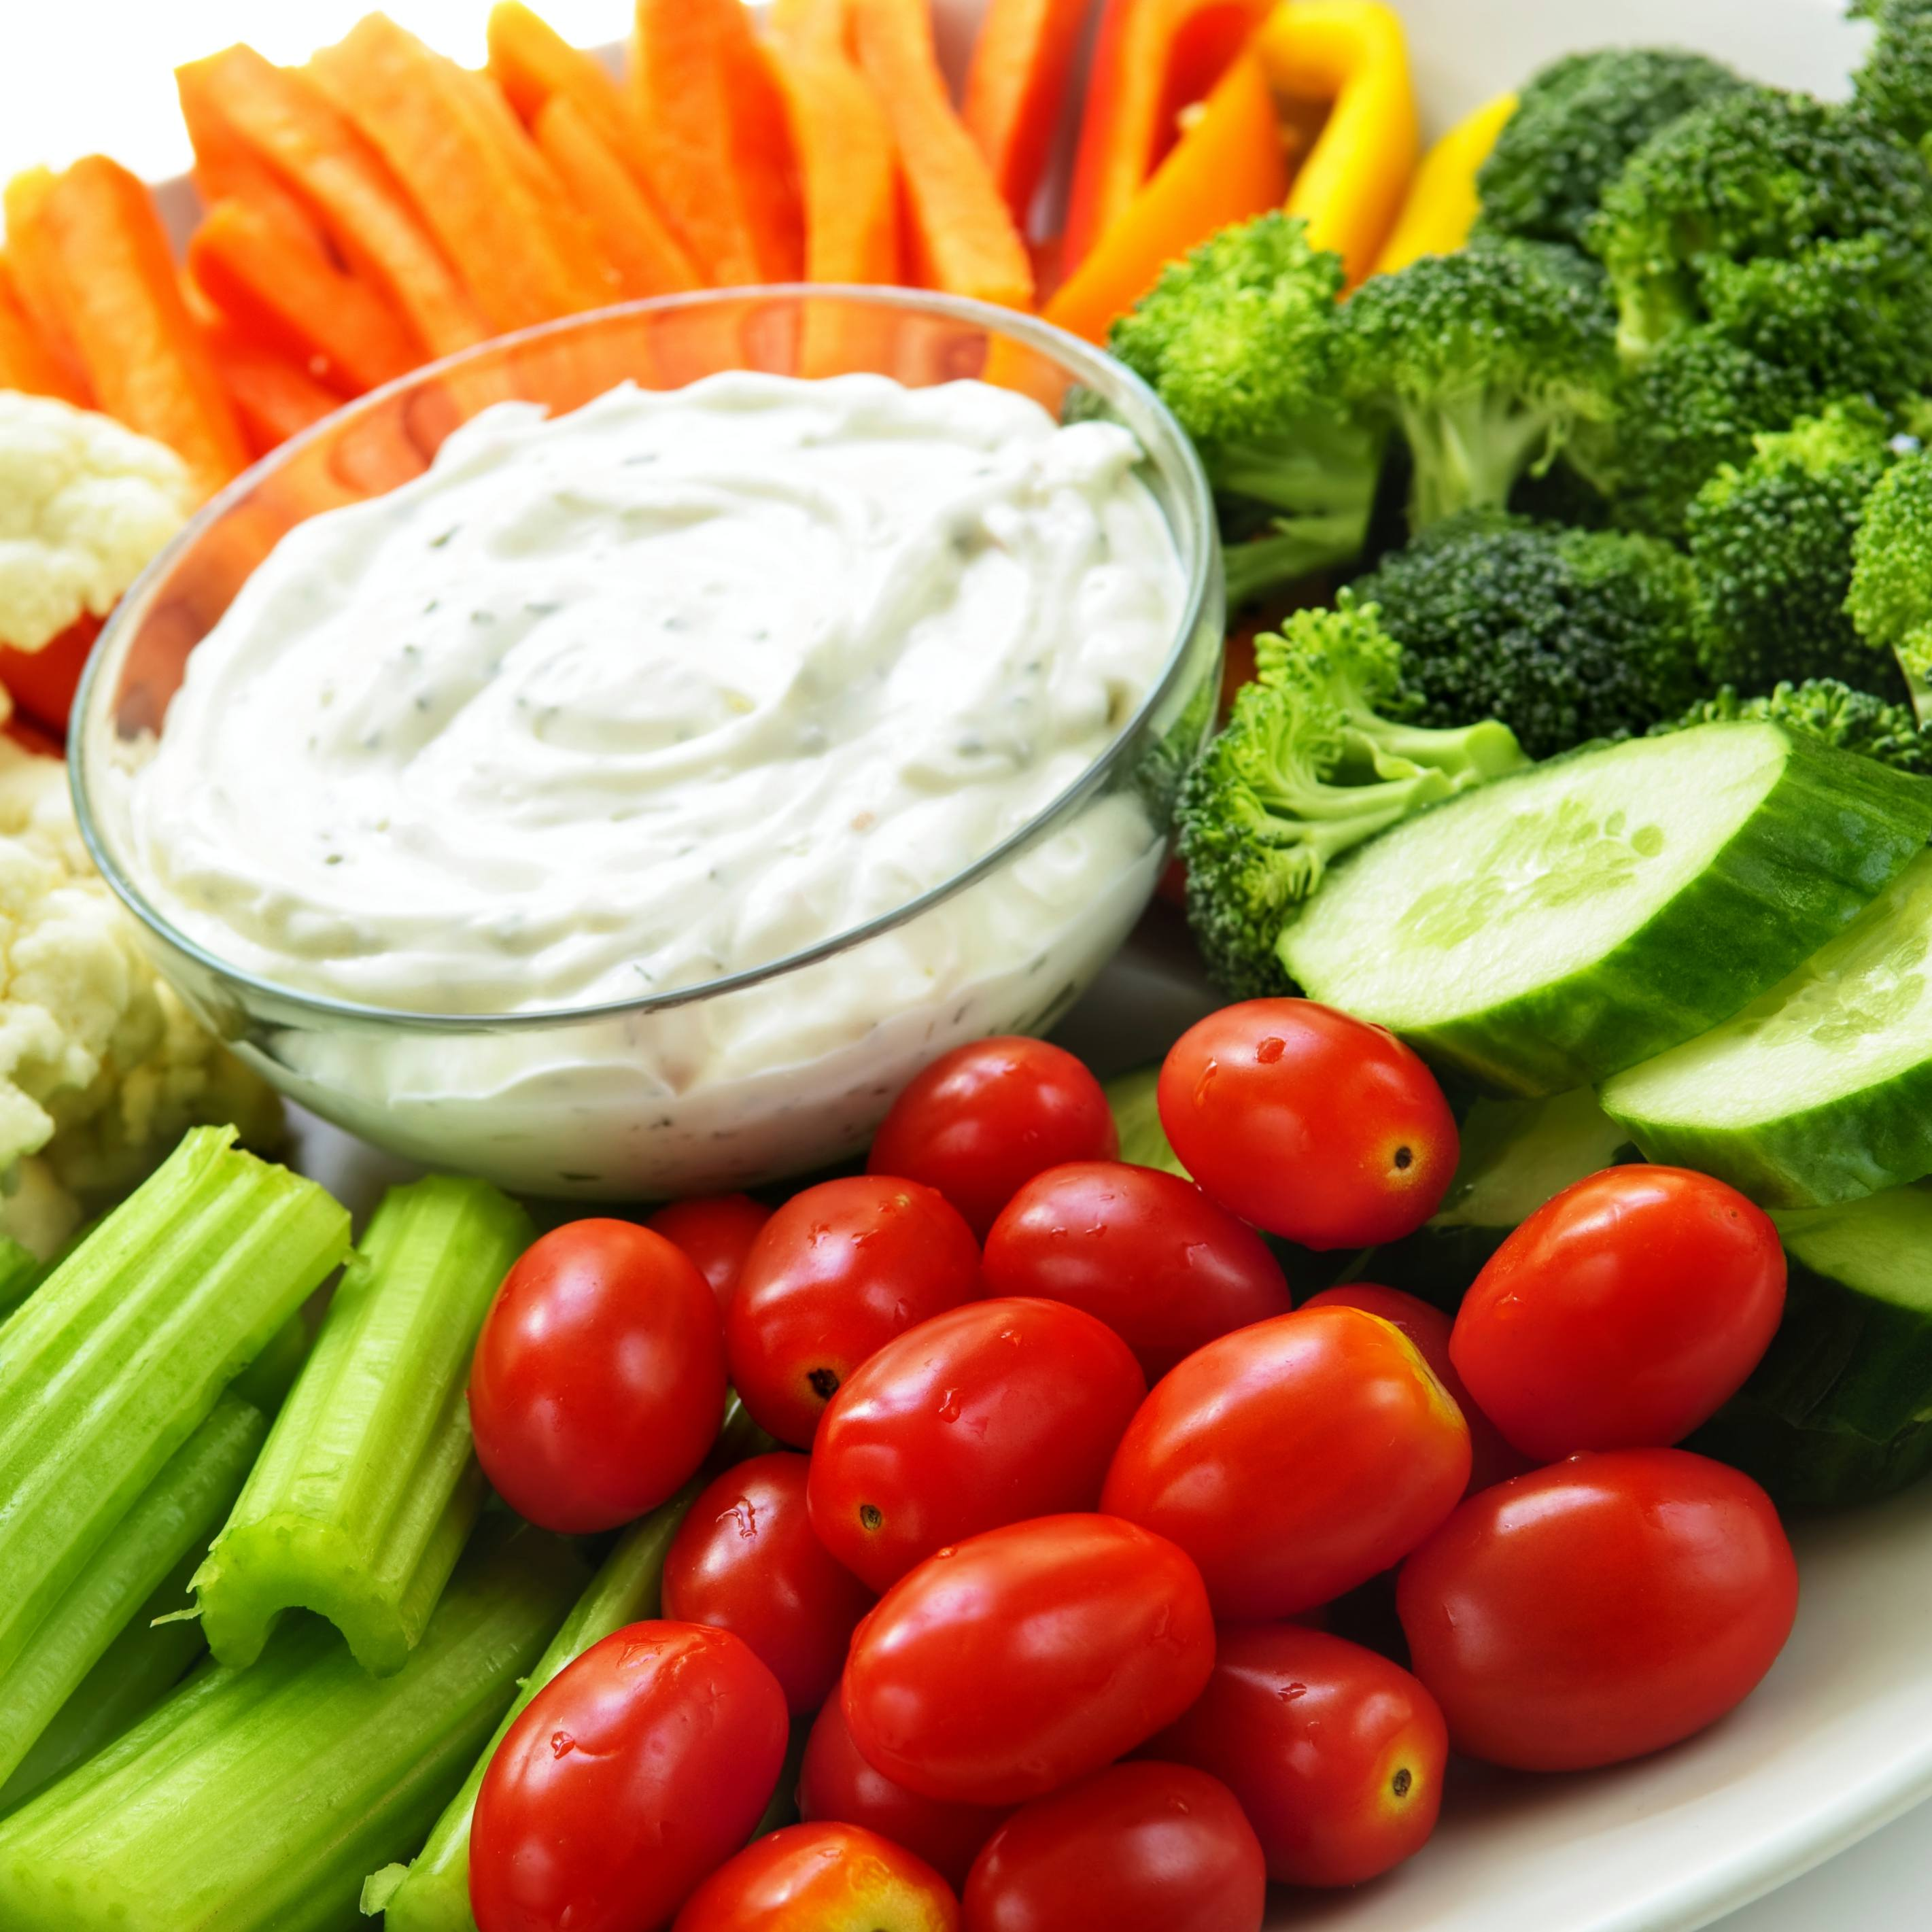 a fresh vegetable platter filled with carrots, tomatoes, cucumbers and more